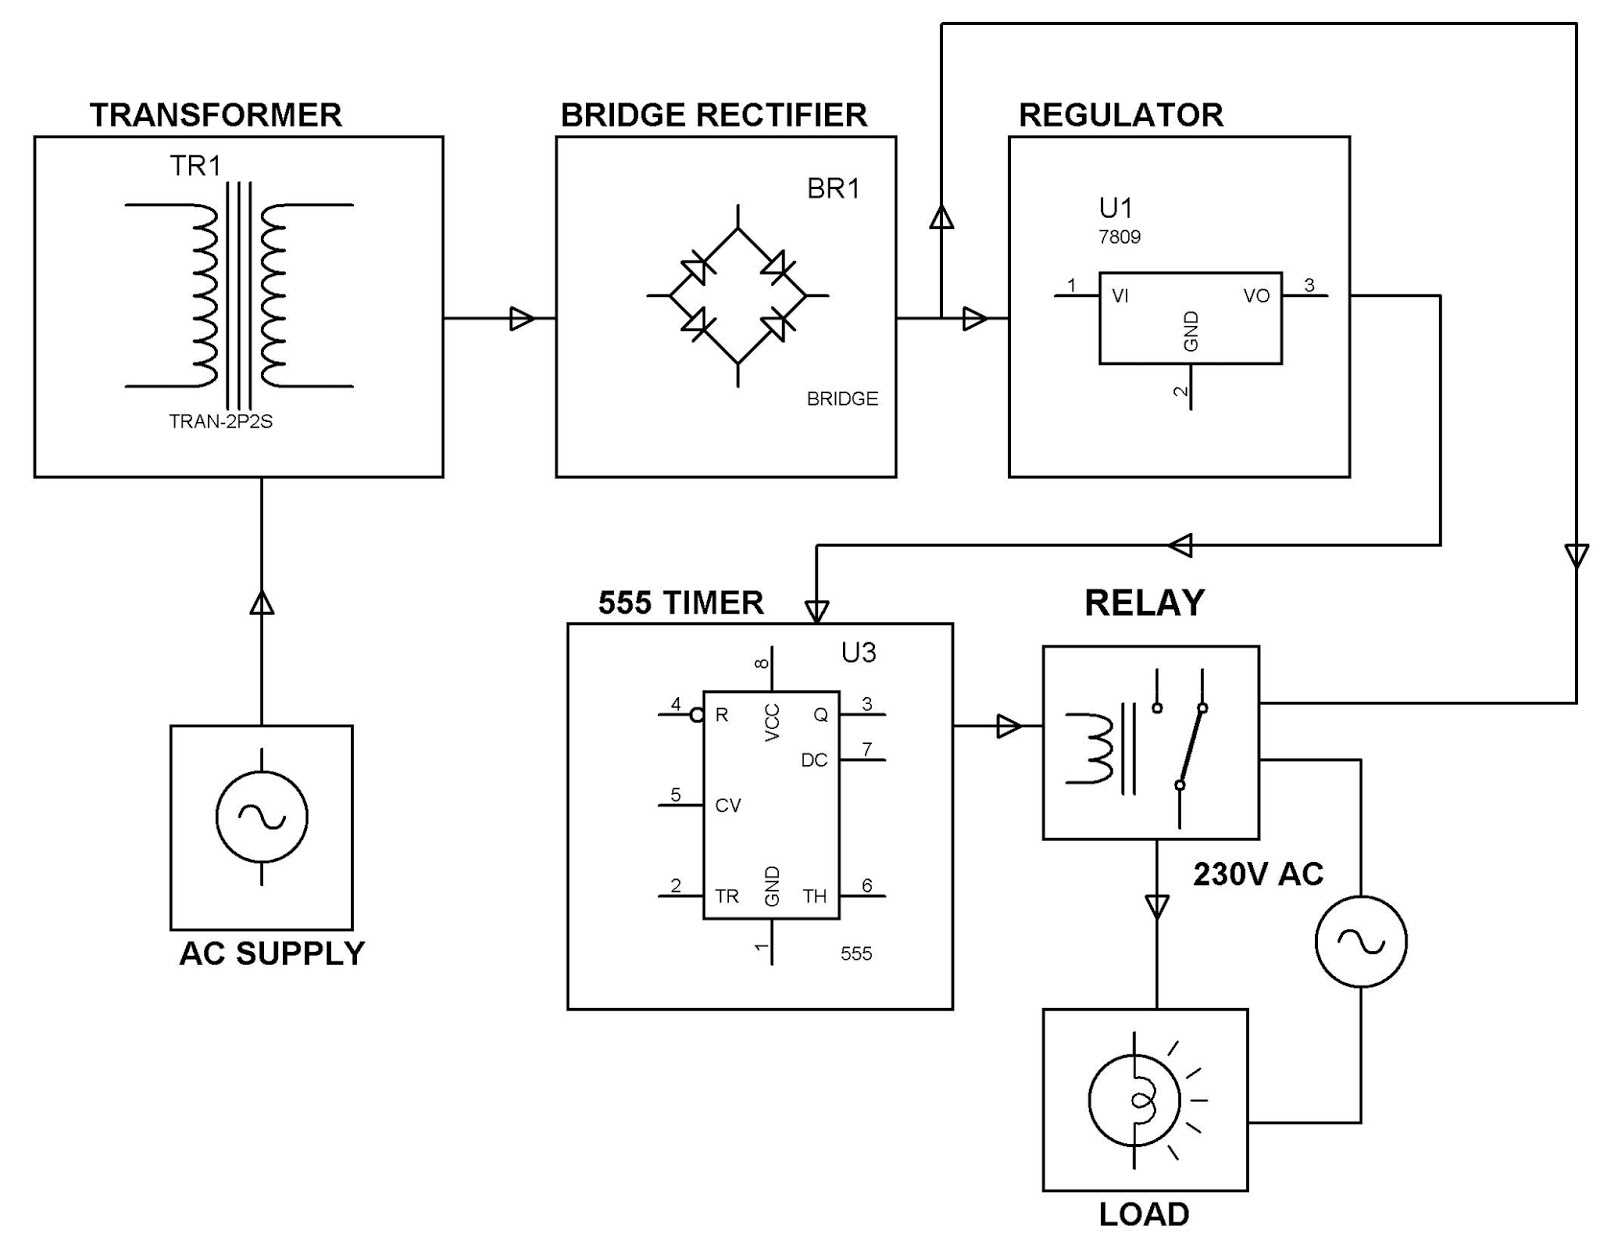 ELECTRONICS PROJECT (MALAYSIA): TIME DELAY BASED RELAY